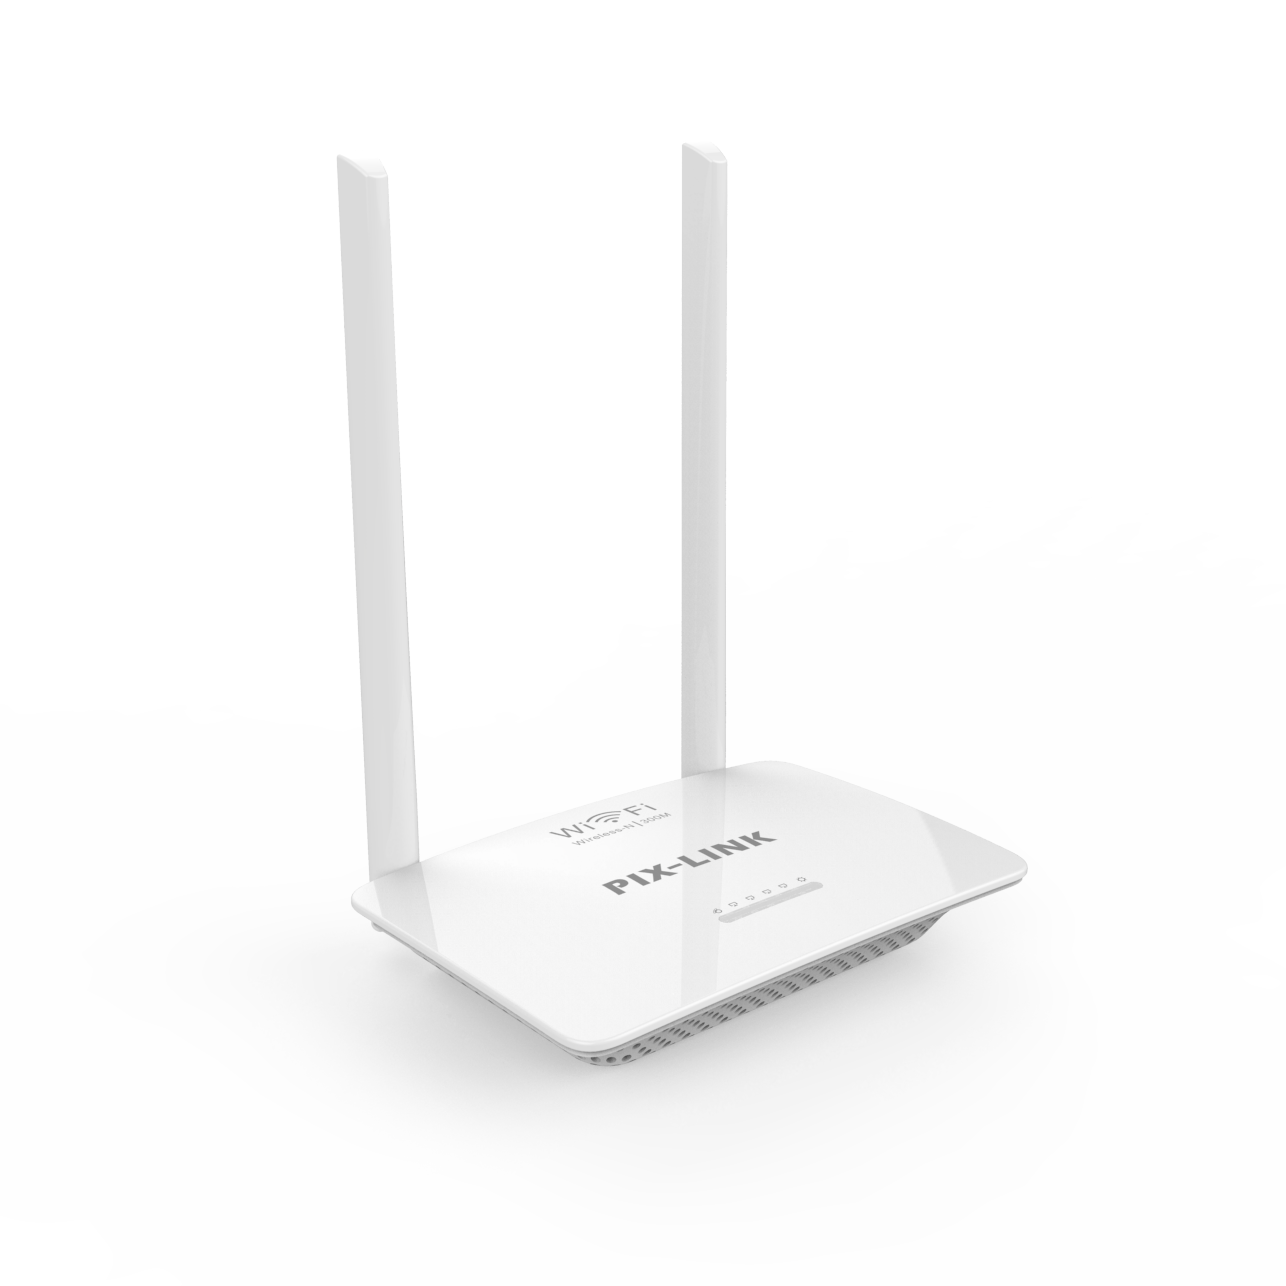 LV-WR07 300Mbps Wireless-N Router